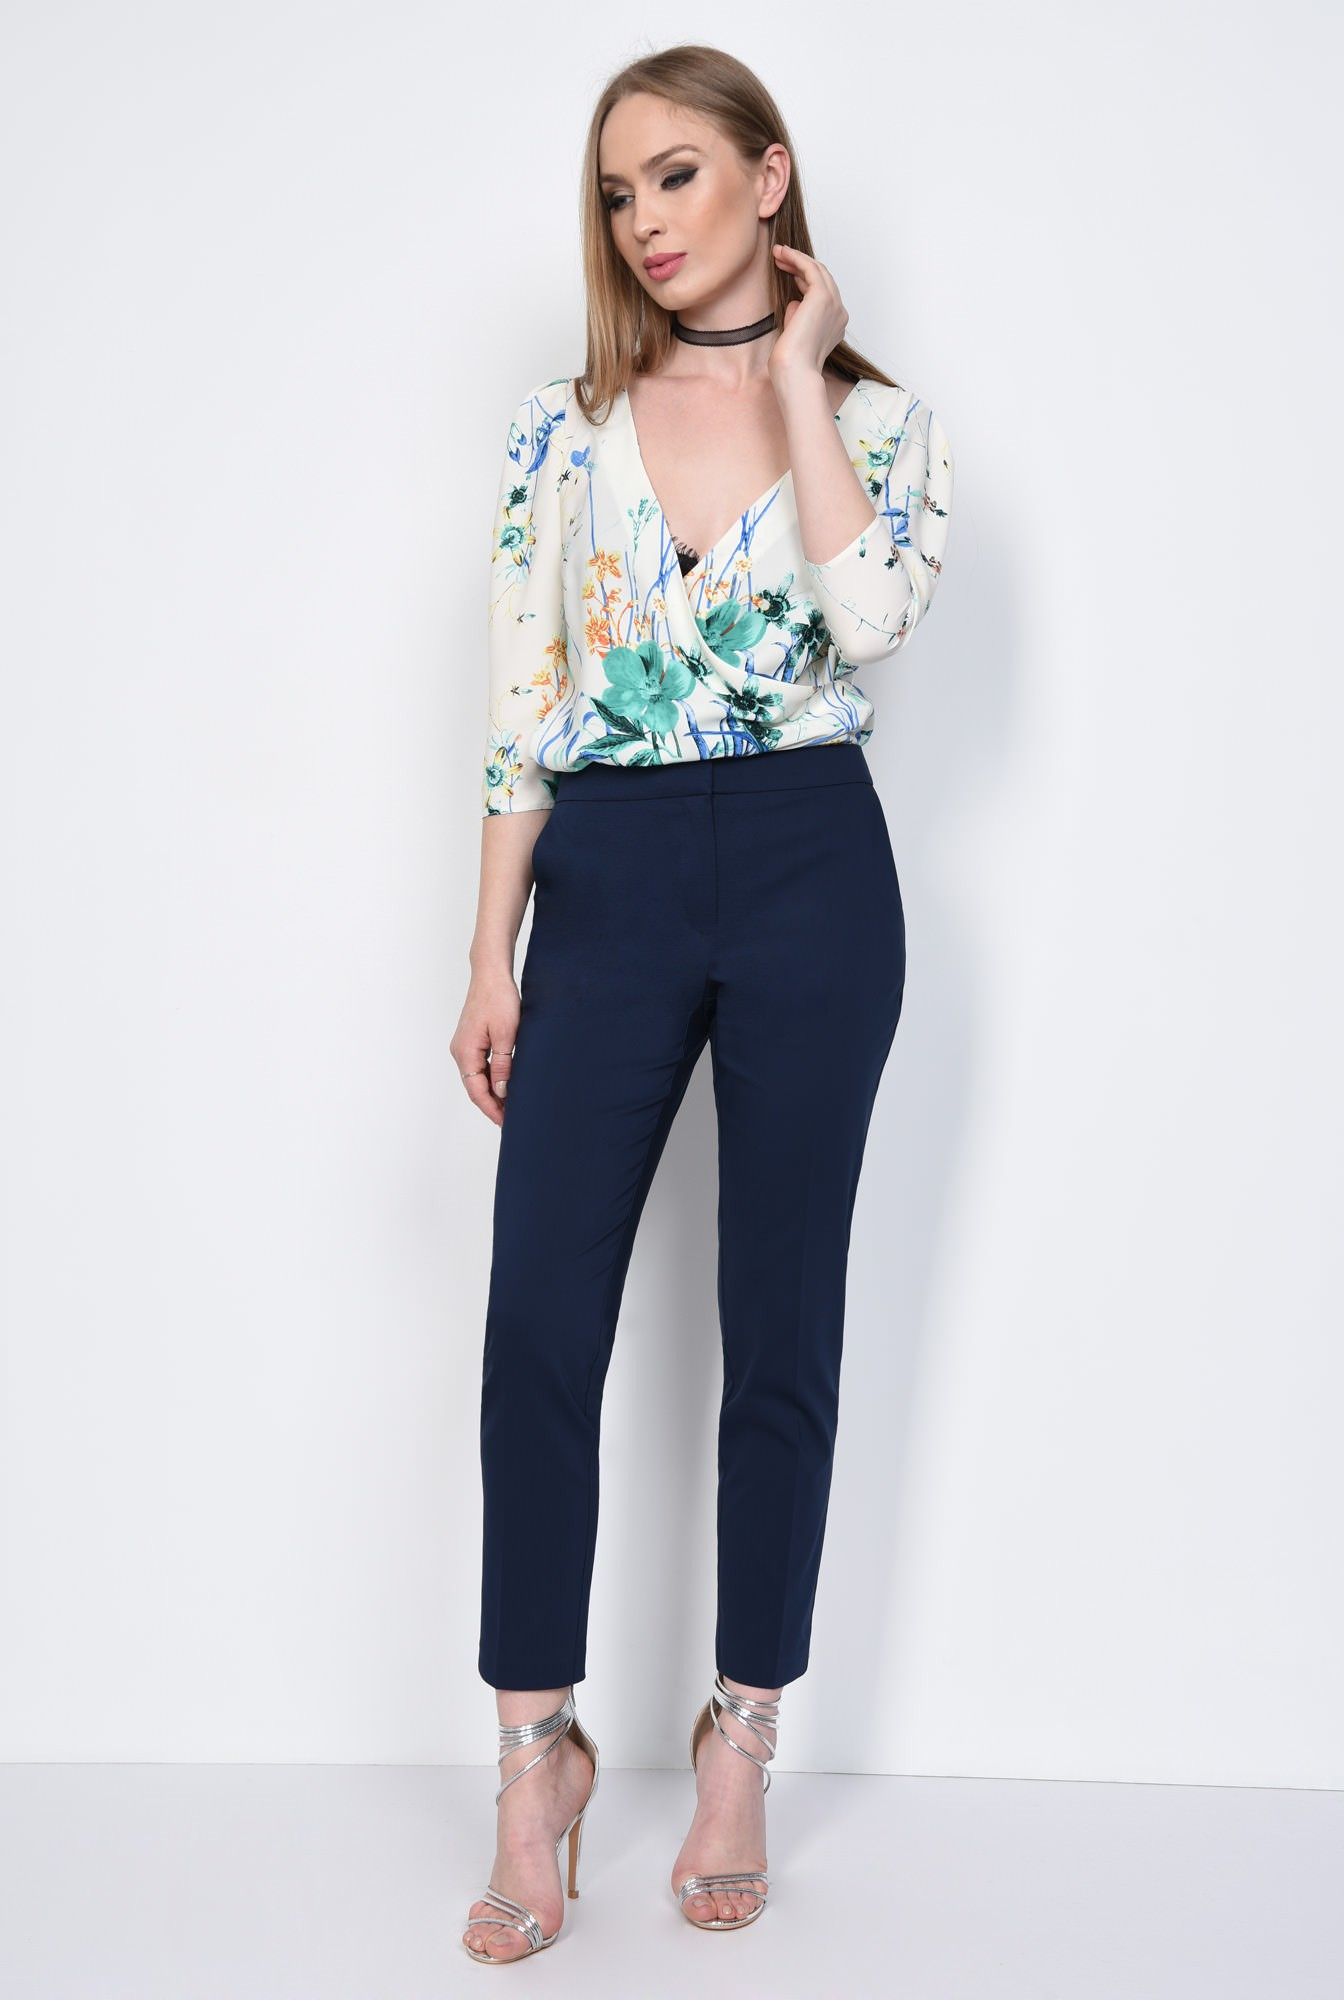 3 - PANTALON OFFICE CONIC PT 144-BLEUMARIN